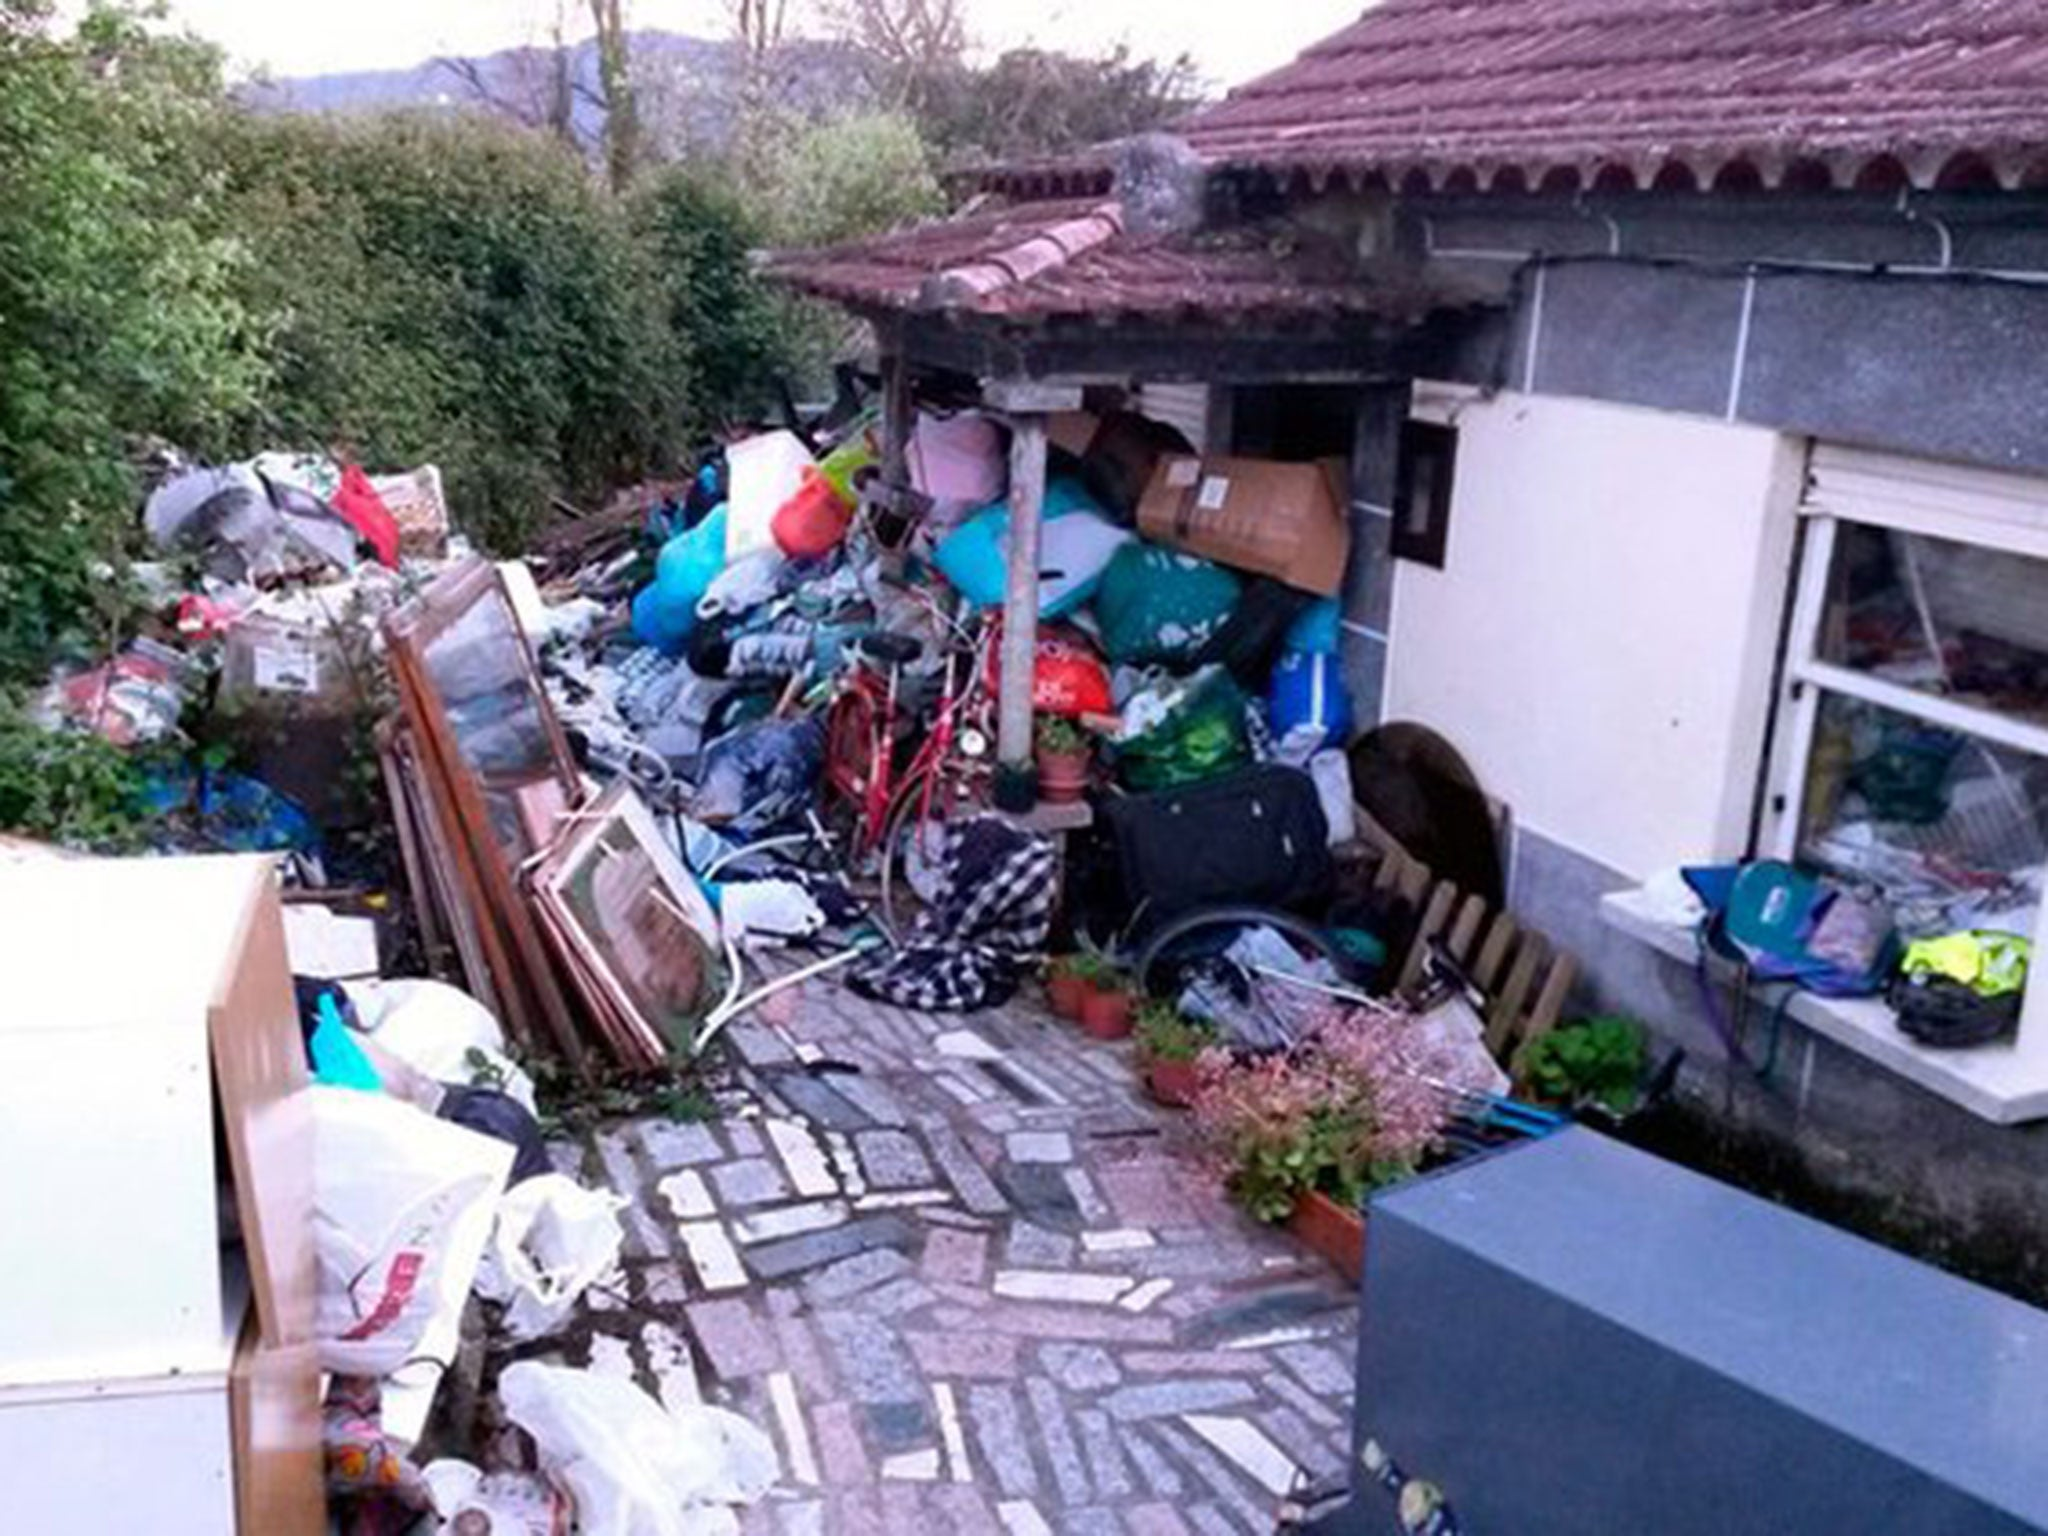 news world europe compulsive hoarder crushed death under mound rubbish